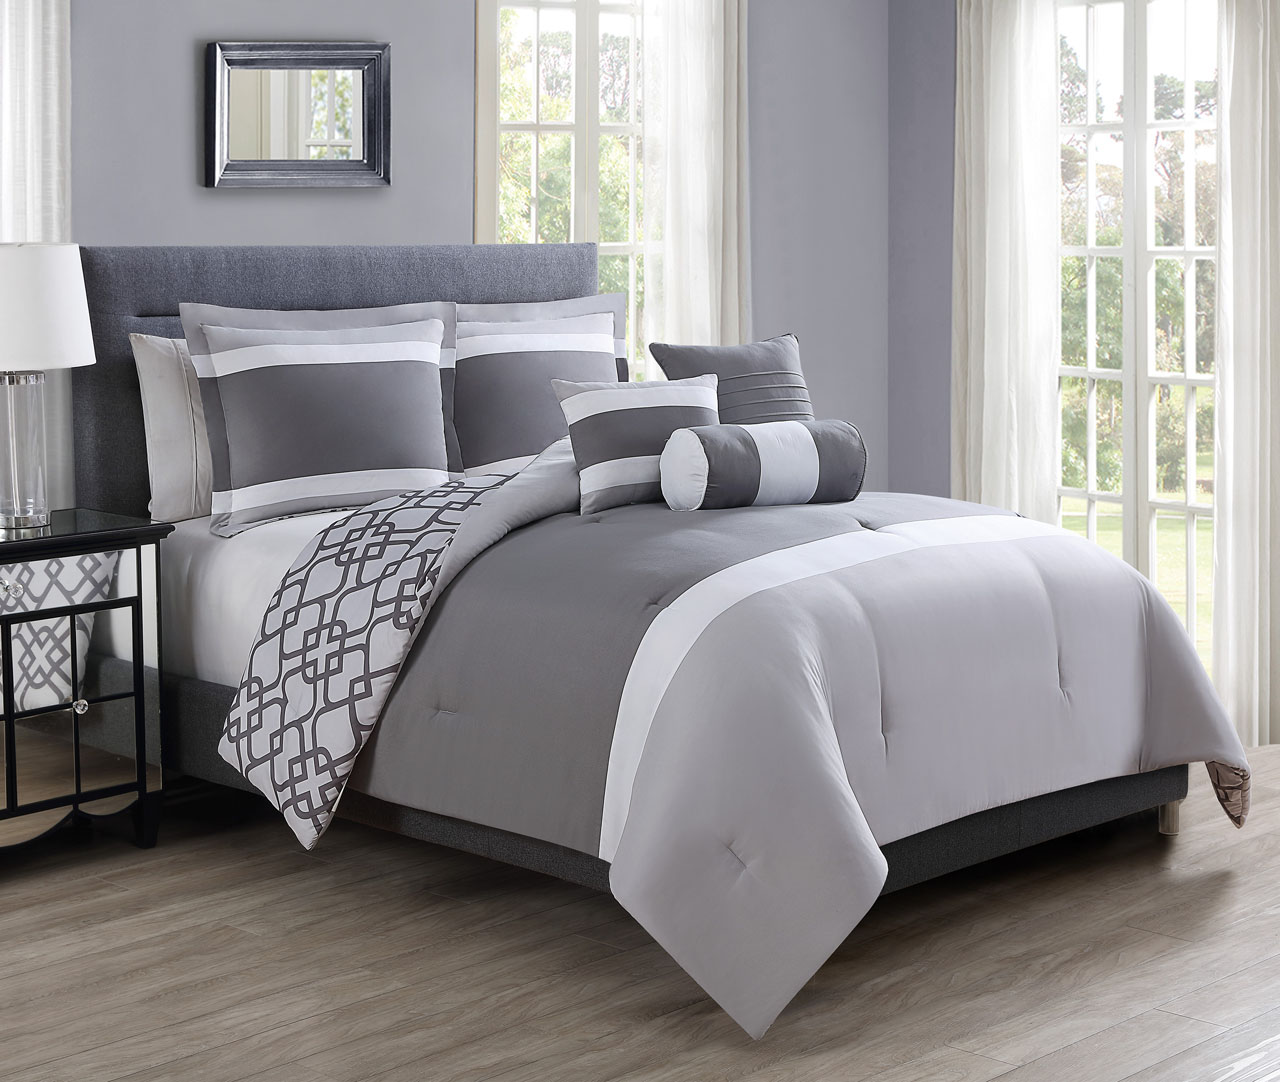 Charcoal Grey Bedding Best 28 43 Charcoal Gray Comforter Sets Beautiful Gray